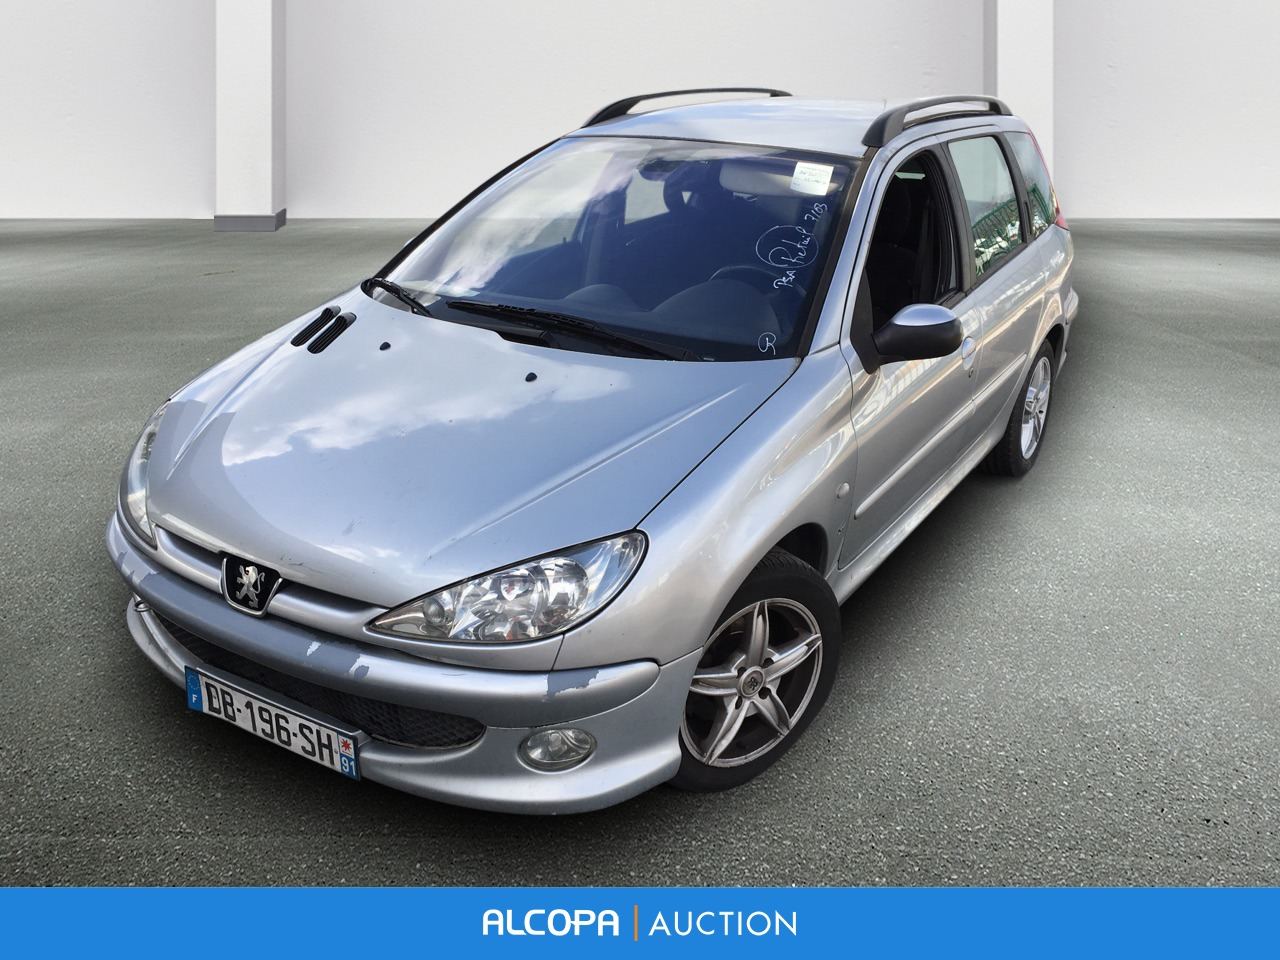 peugeot 206 sw 206 sw 2 0 hdi xs alcopa auction. Black Bedroom Furniture Sets. Home Design Ideas